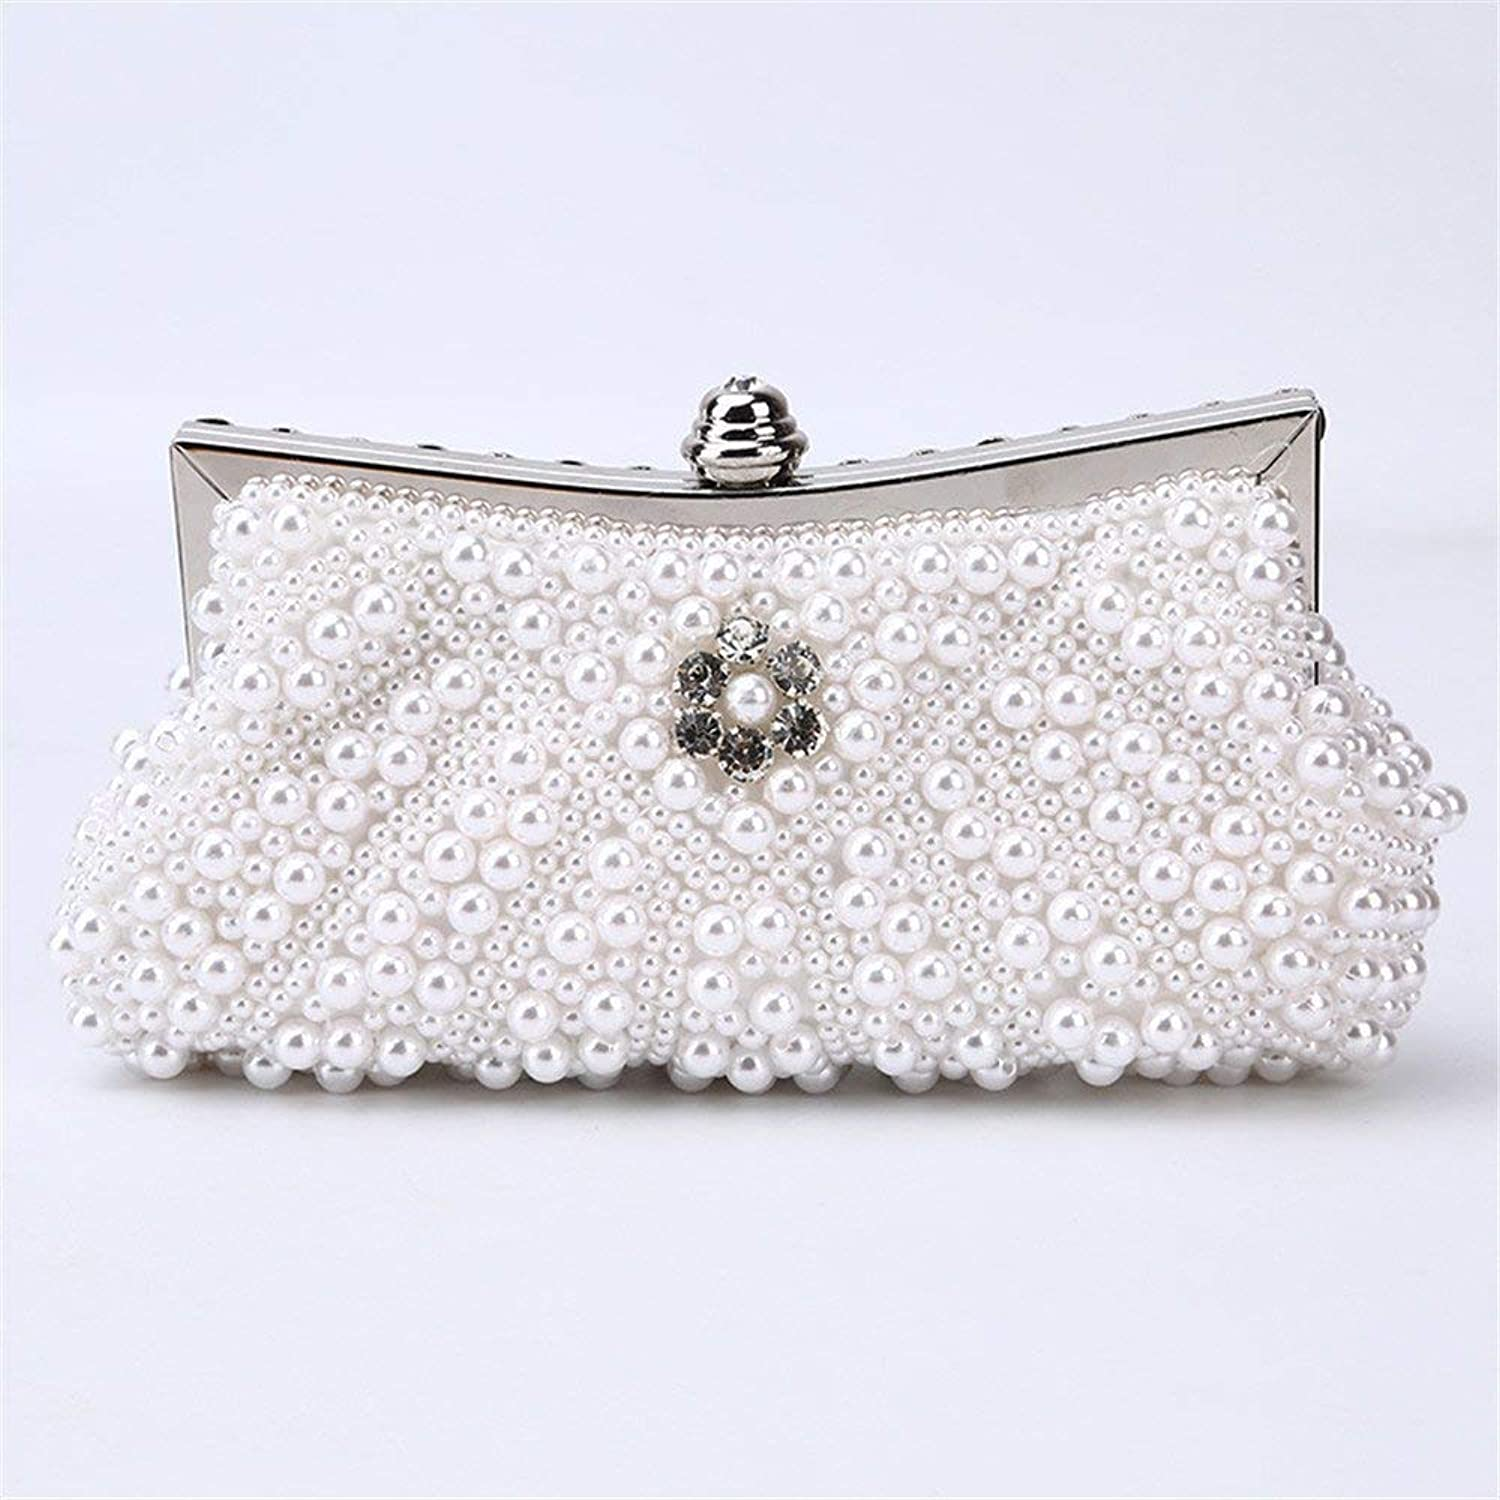 Clutch Bag Ladies Evening Bag Handbag Prom Bag Purse Lady Pearl Beaded Rhinestone Women's Clutch Wallet Evening Hand Bag Bridal Wedding Handbag Prom Clutch Purse Dinner Purse (color   White)